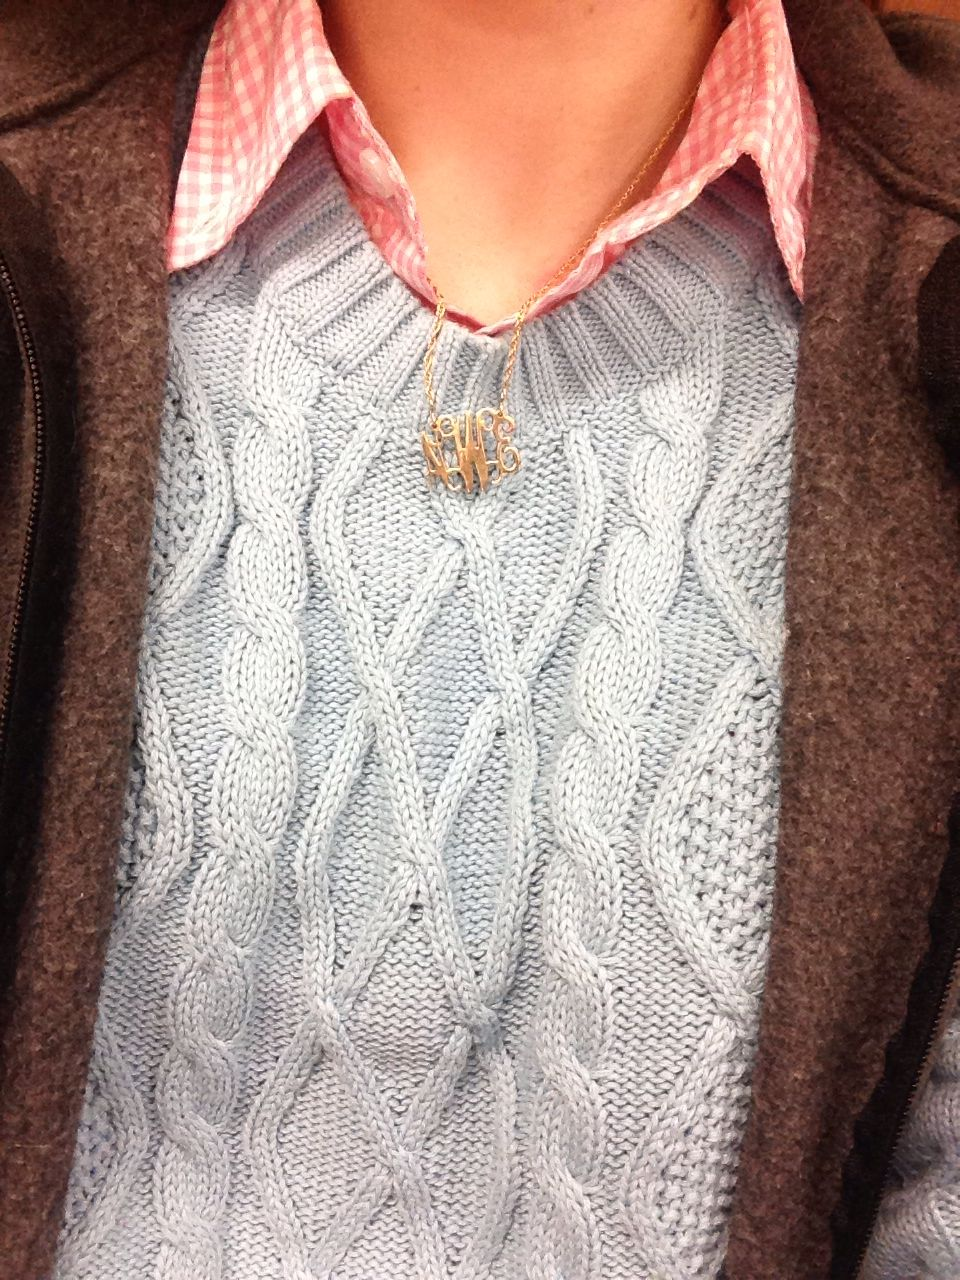 Jcrew Gingham shirt with cable knit sweater and Columbia vest